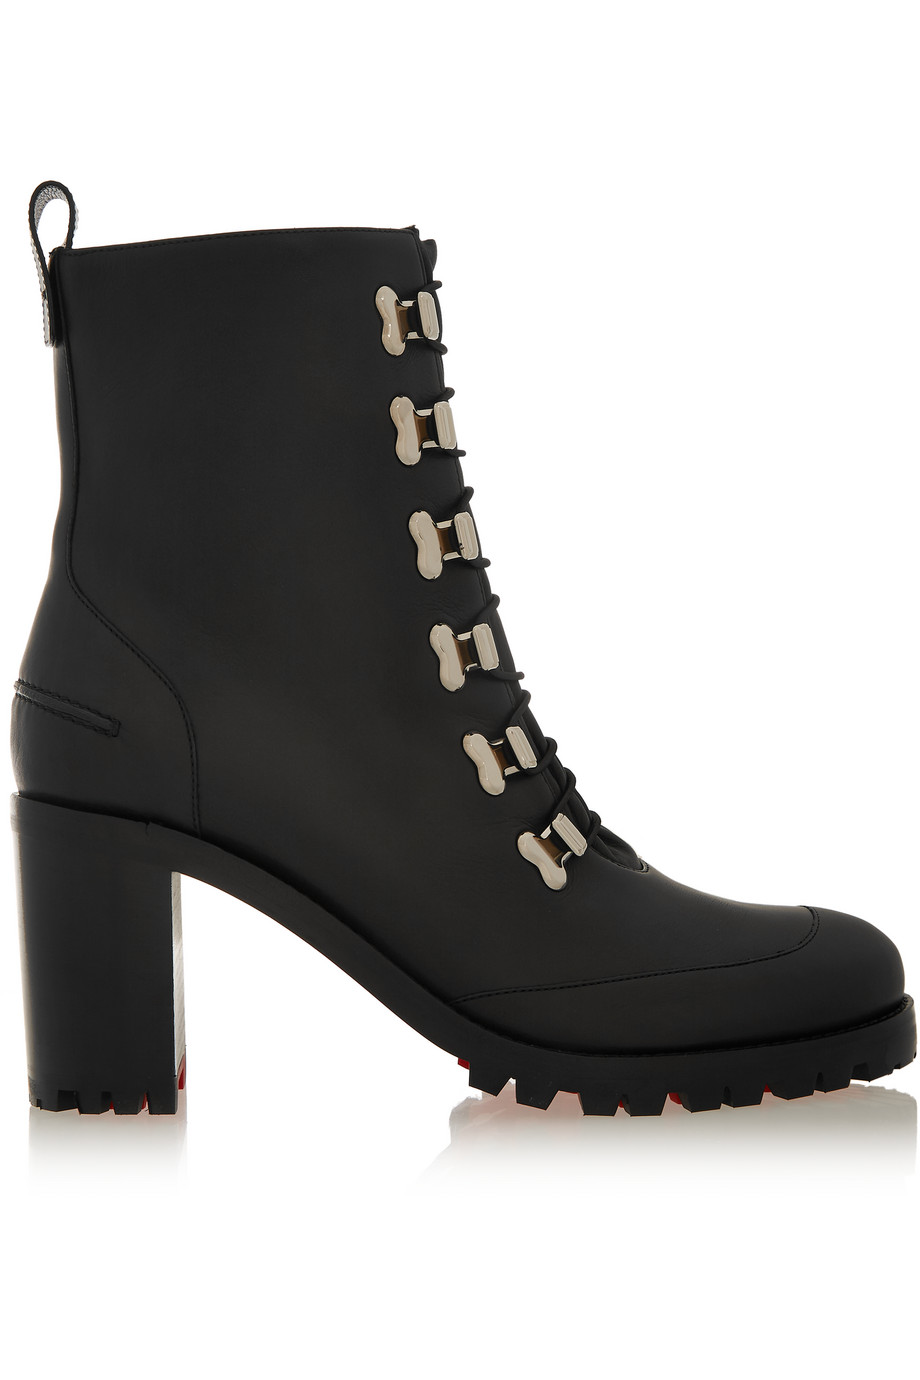 Christian Louboutin Country Croche 70 Leather Boots, Black, Women's US Size: 4, Size: 34.5